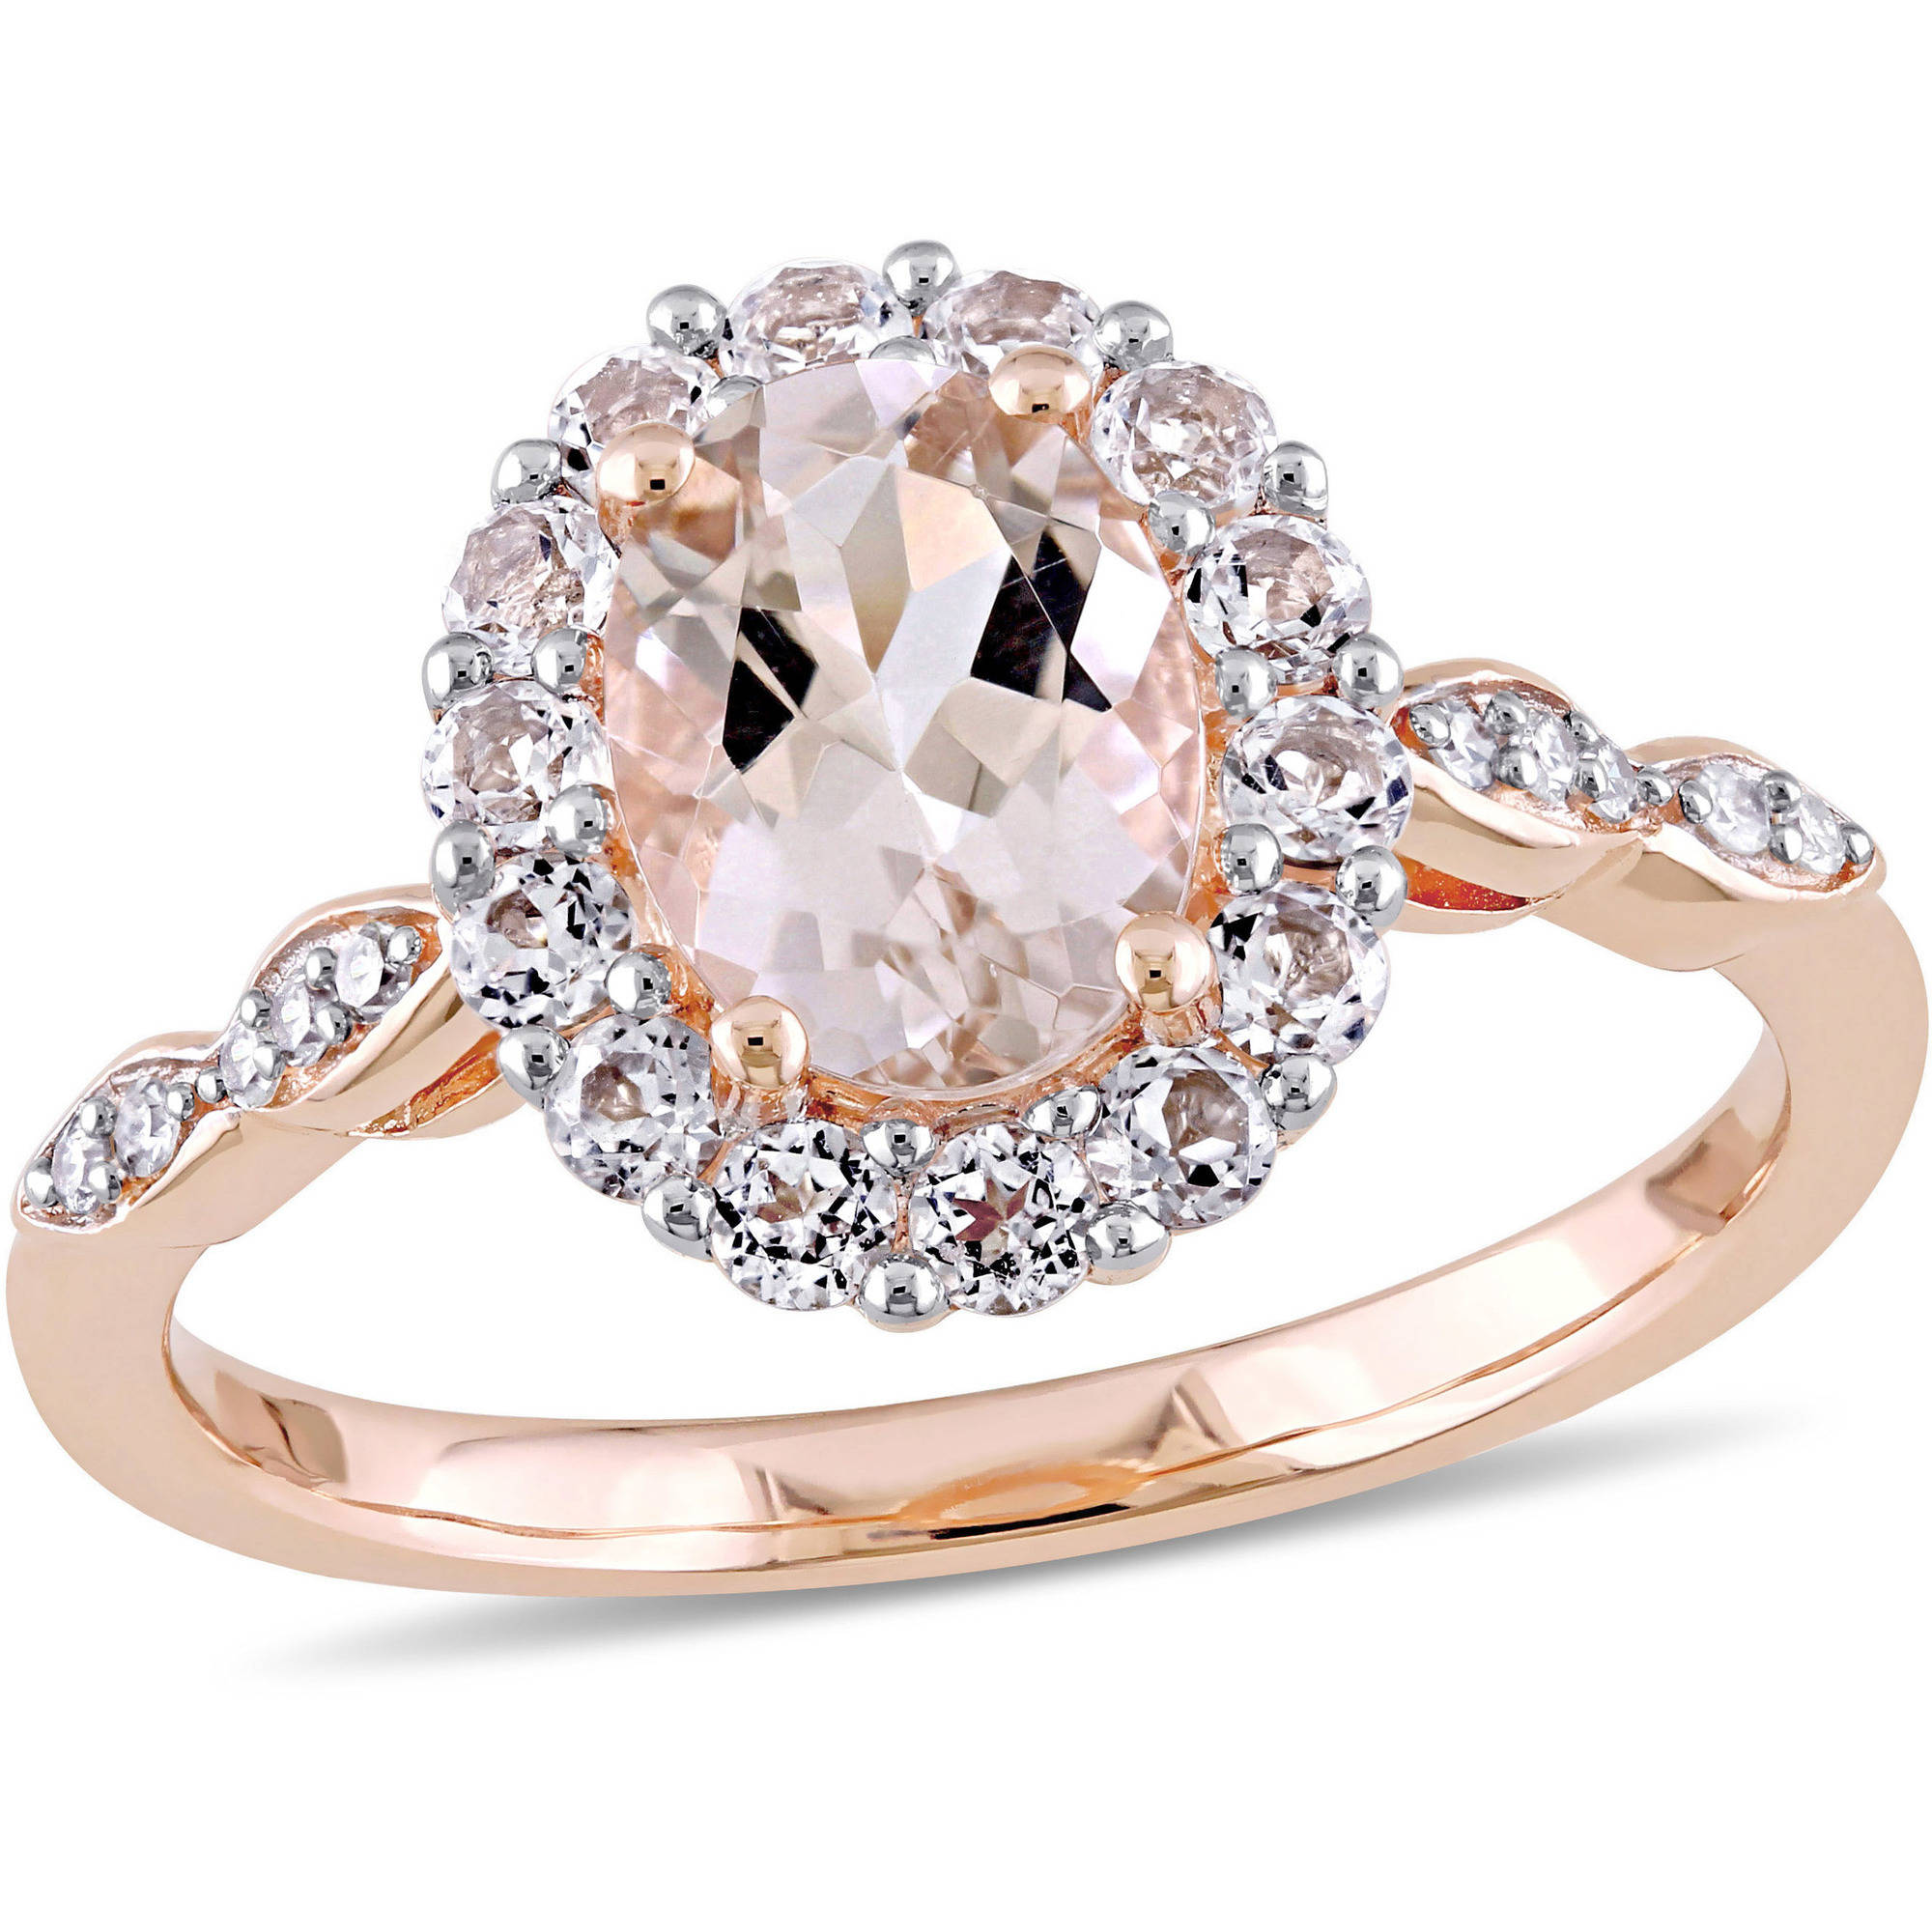 Tangelo 134 Carat TGW Morganite White Topaz and Diamond